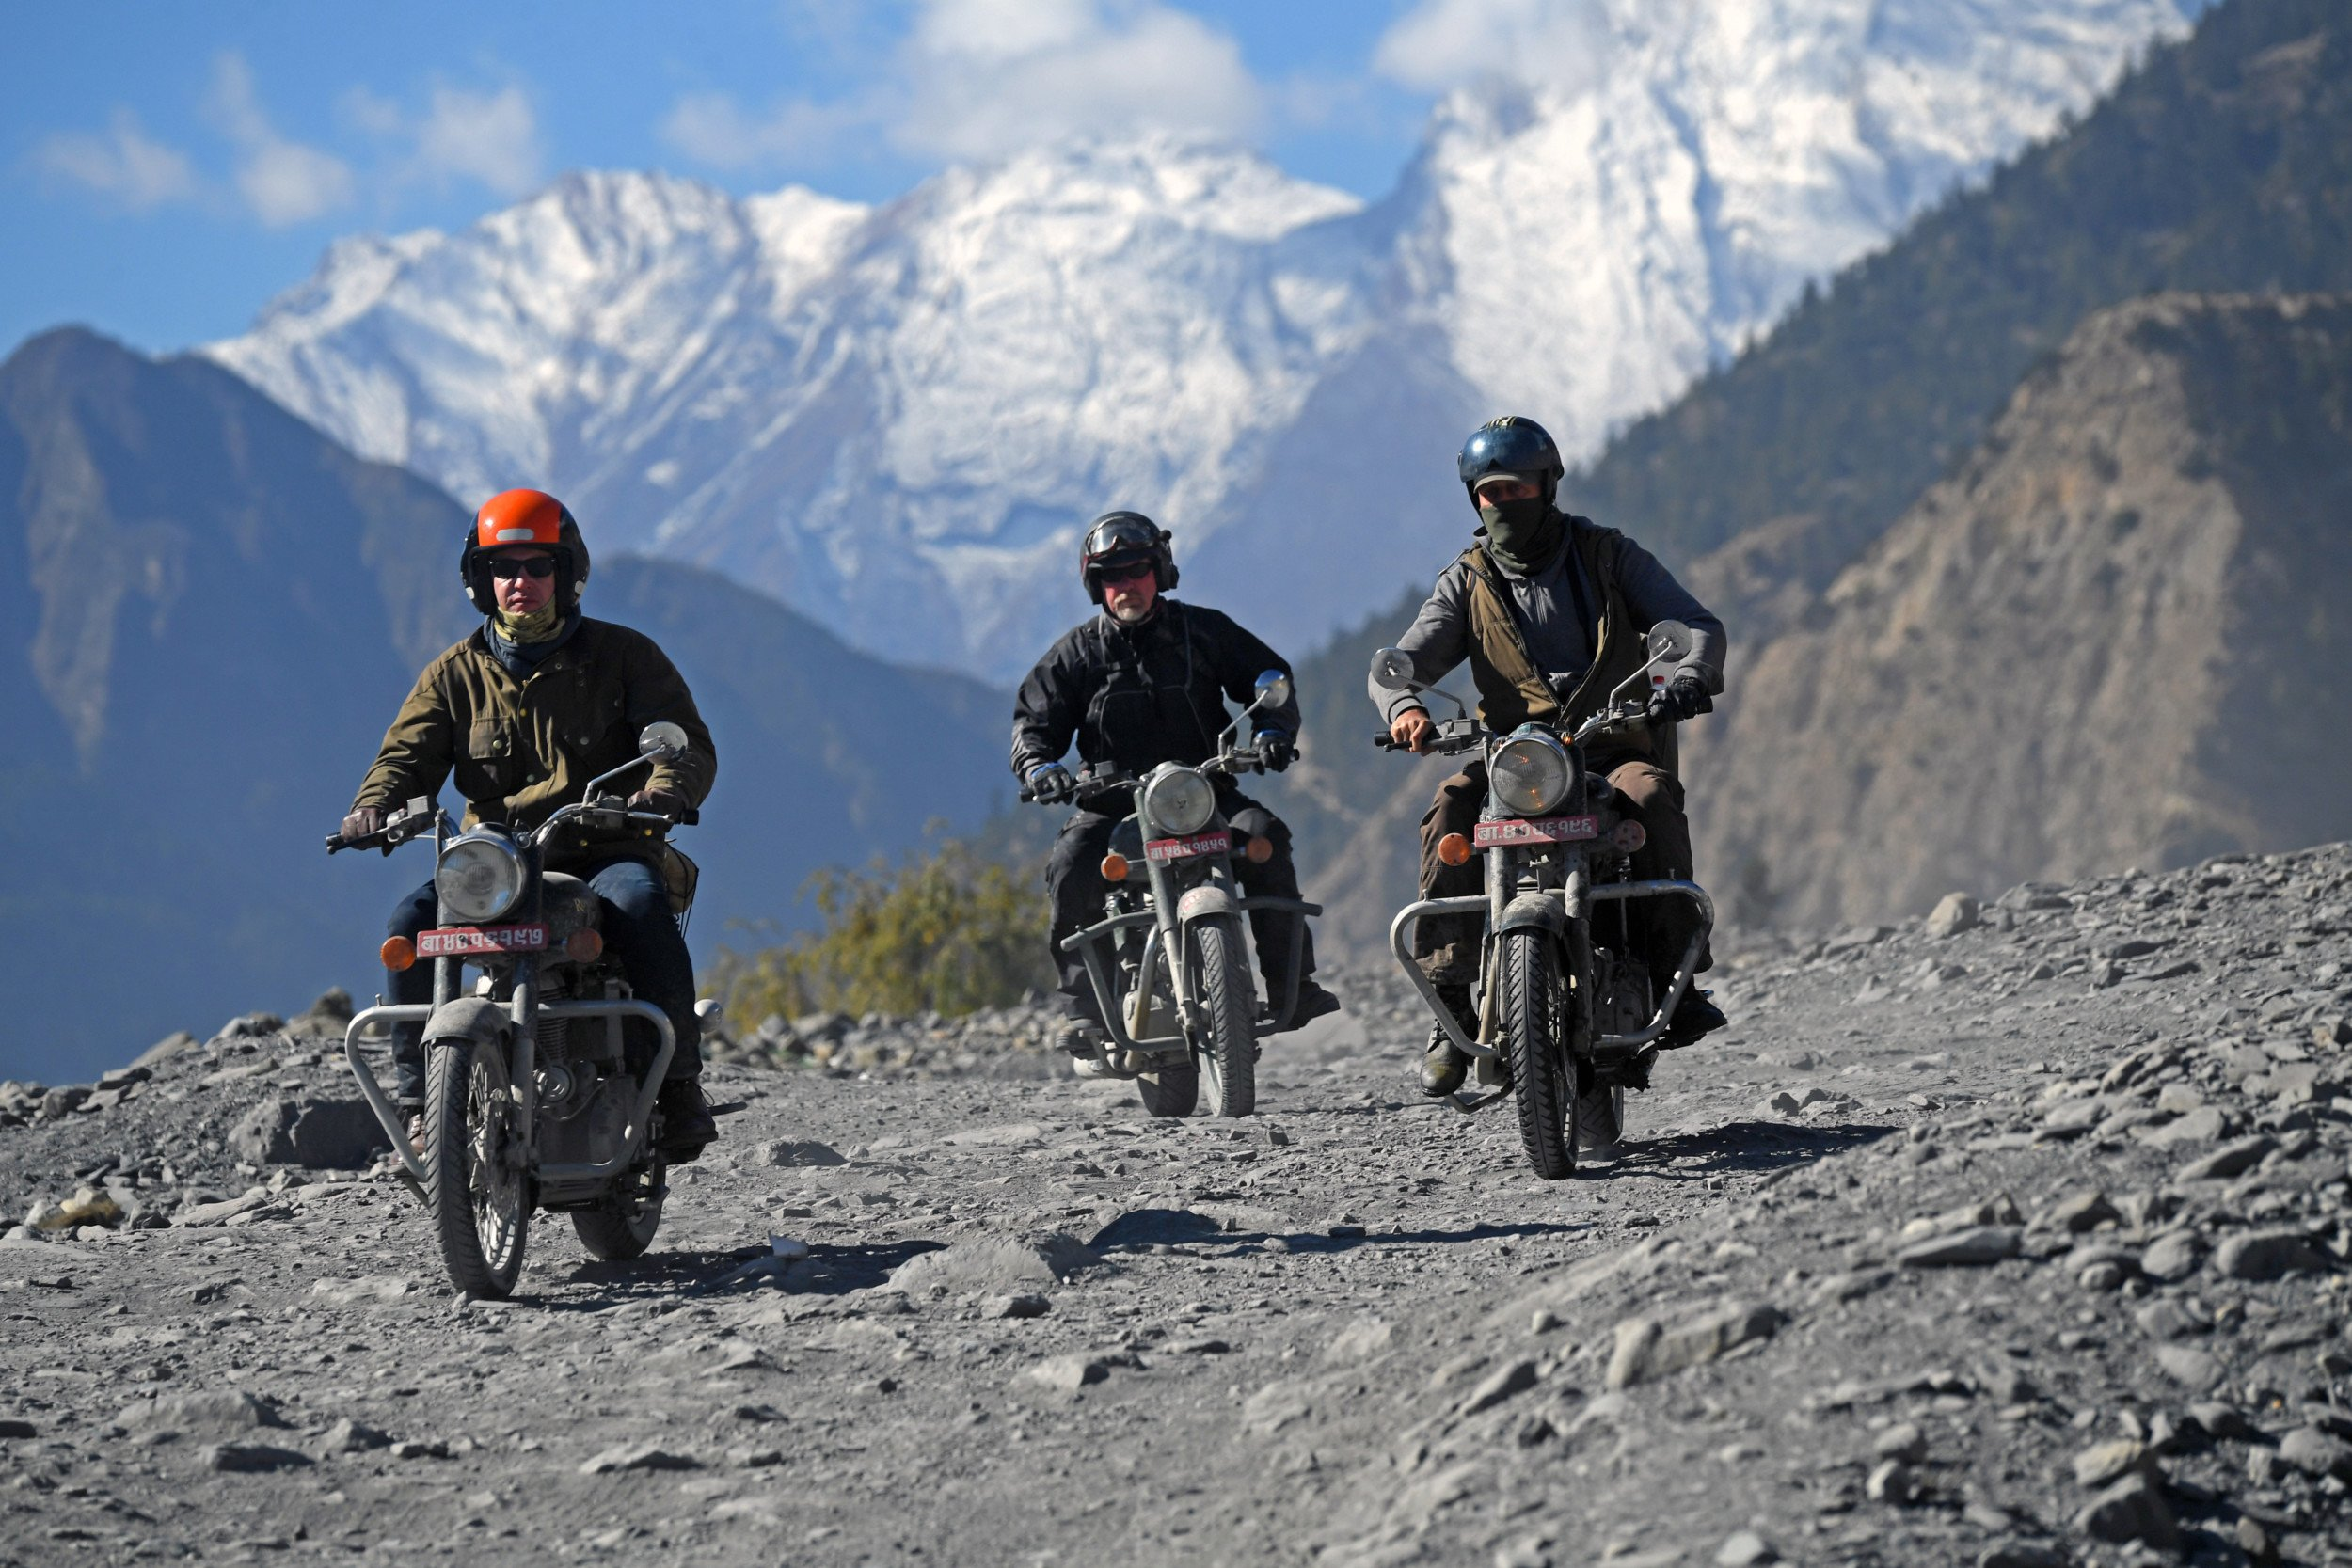 Motorcycle road trip Nepal & Bhutan - Mustang: the Legendary Expedition